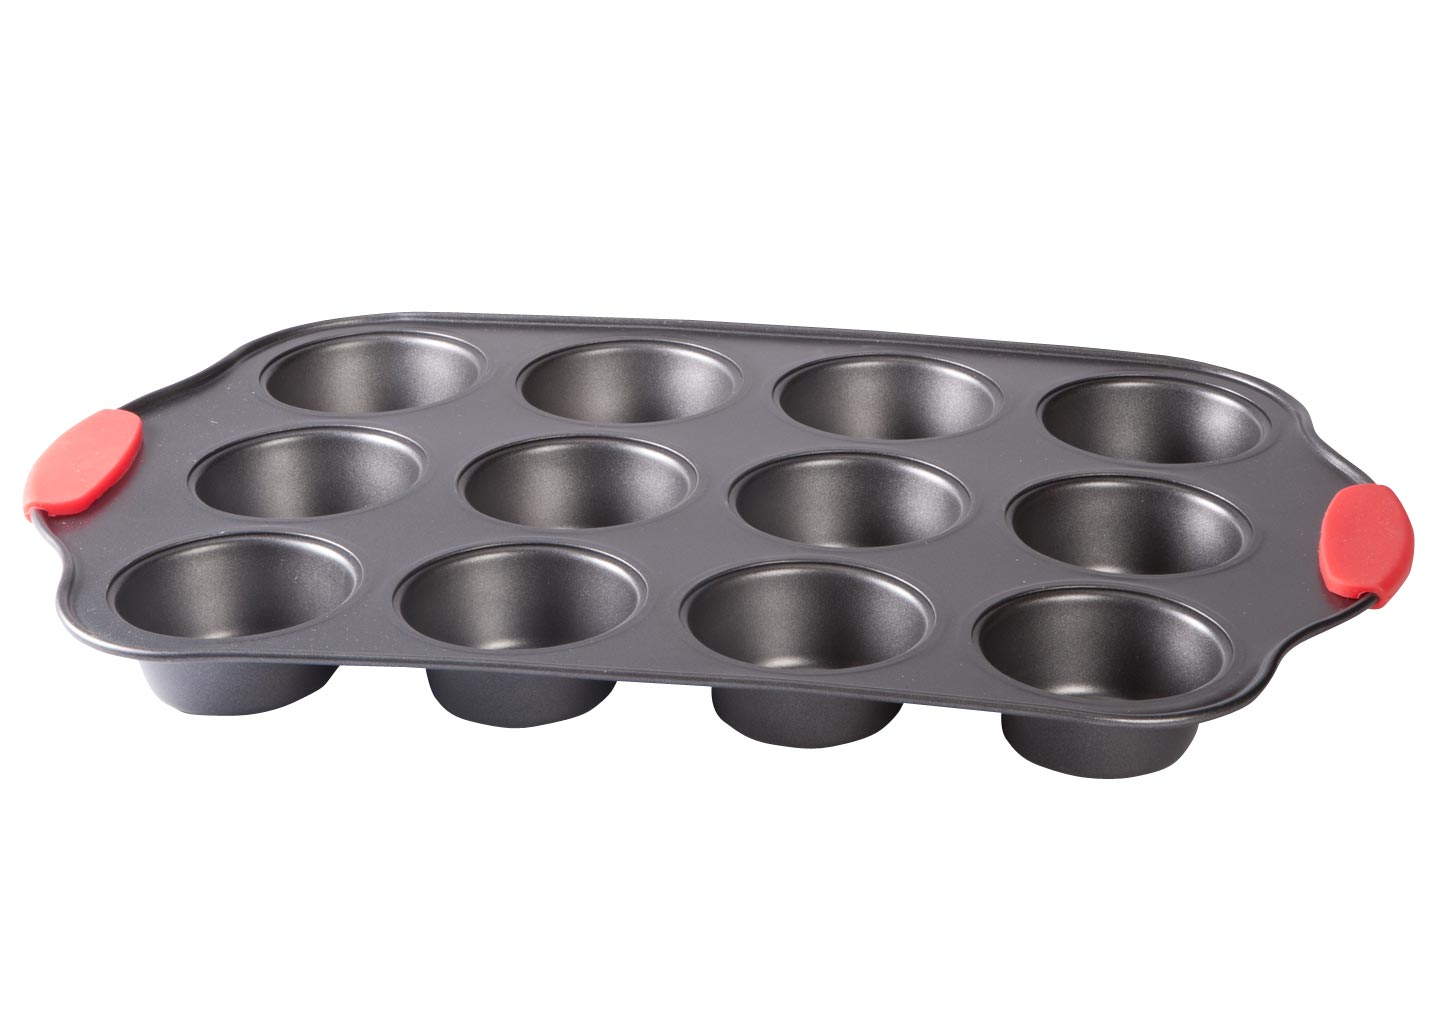 12 Cup Muffin Pan with Red Silicone Handles by HSK by Miles Kimball